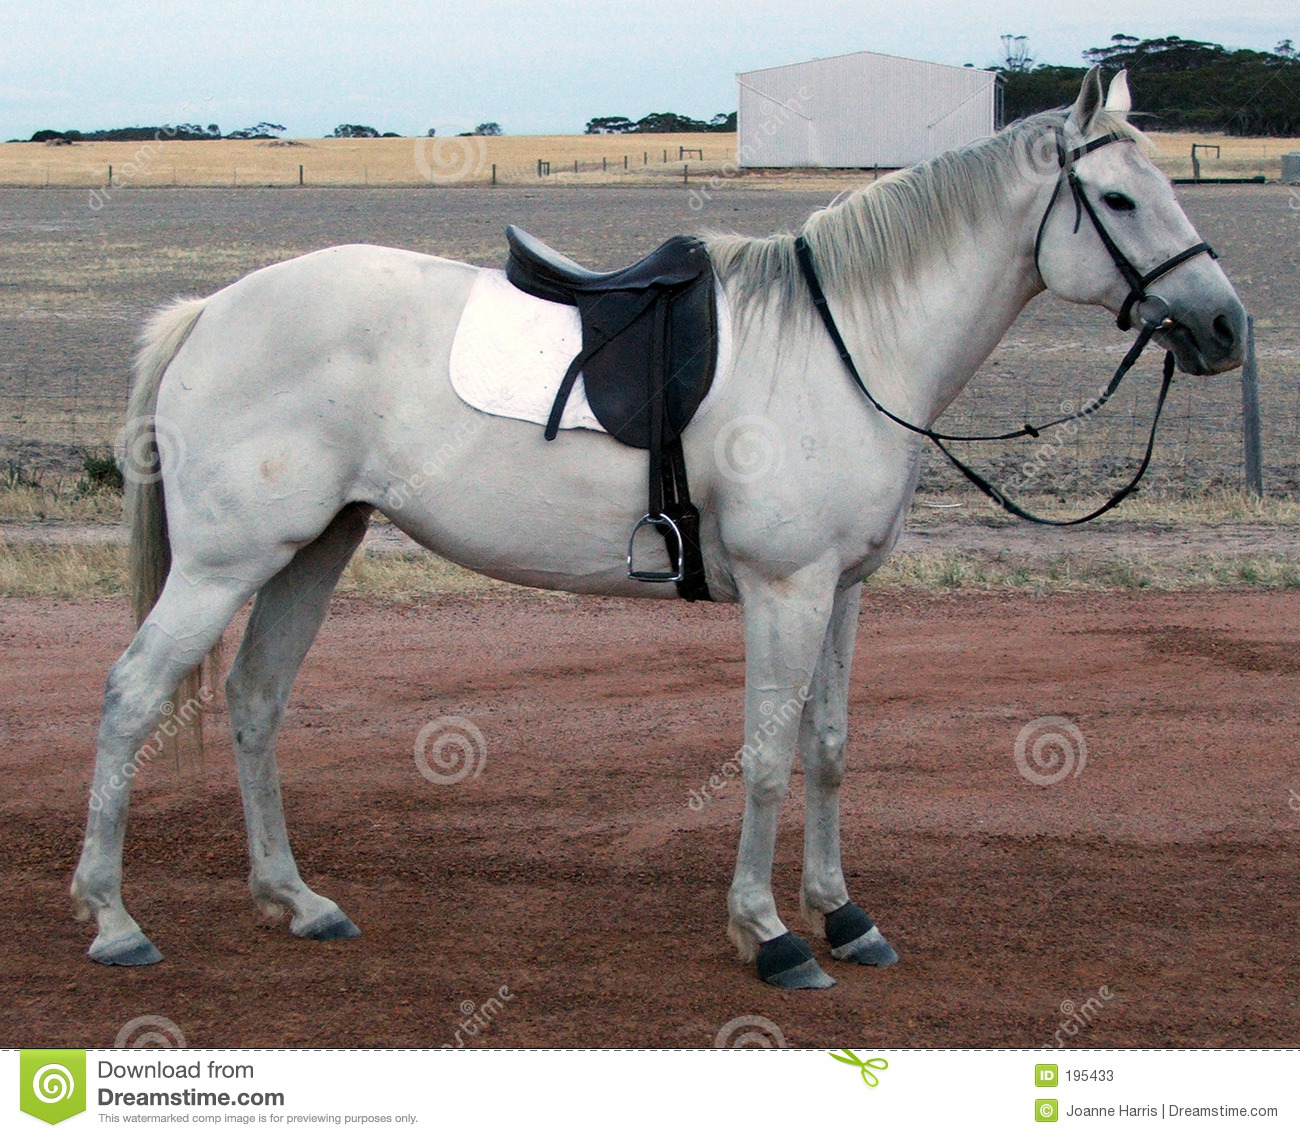 Horse is tacked up with saddle and bridle ready for a ride.